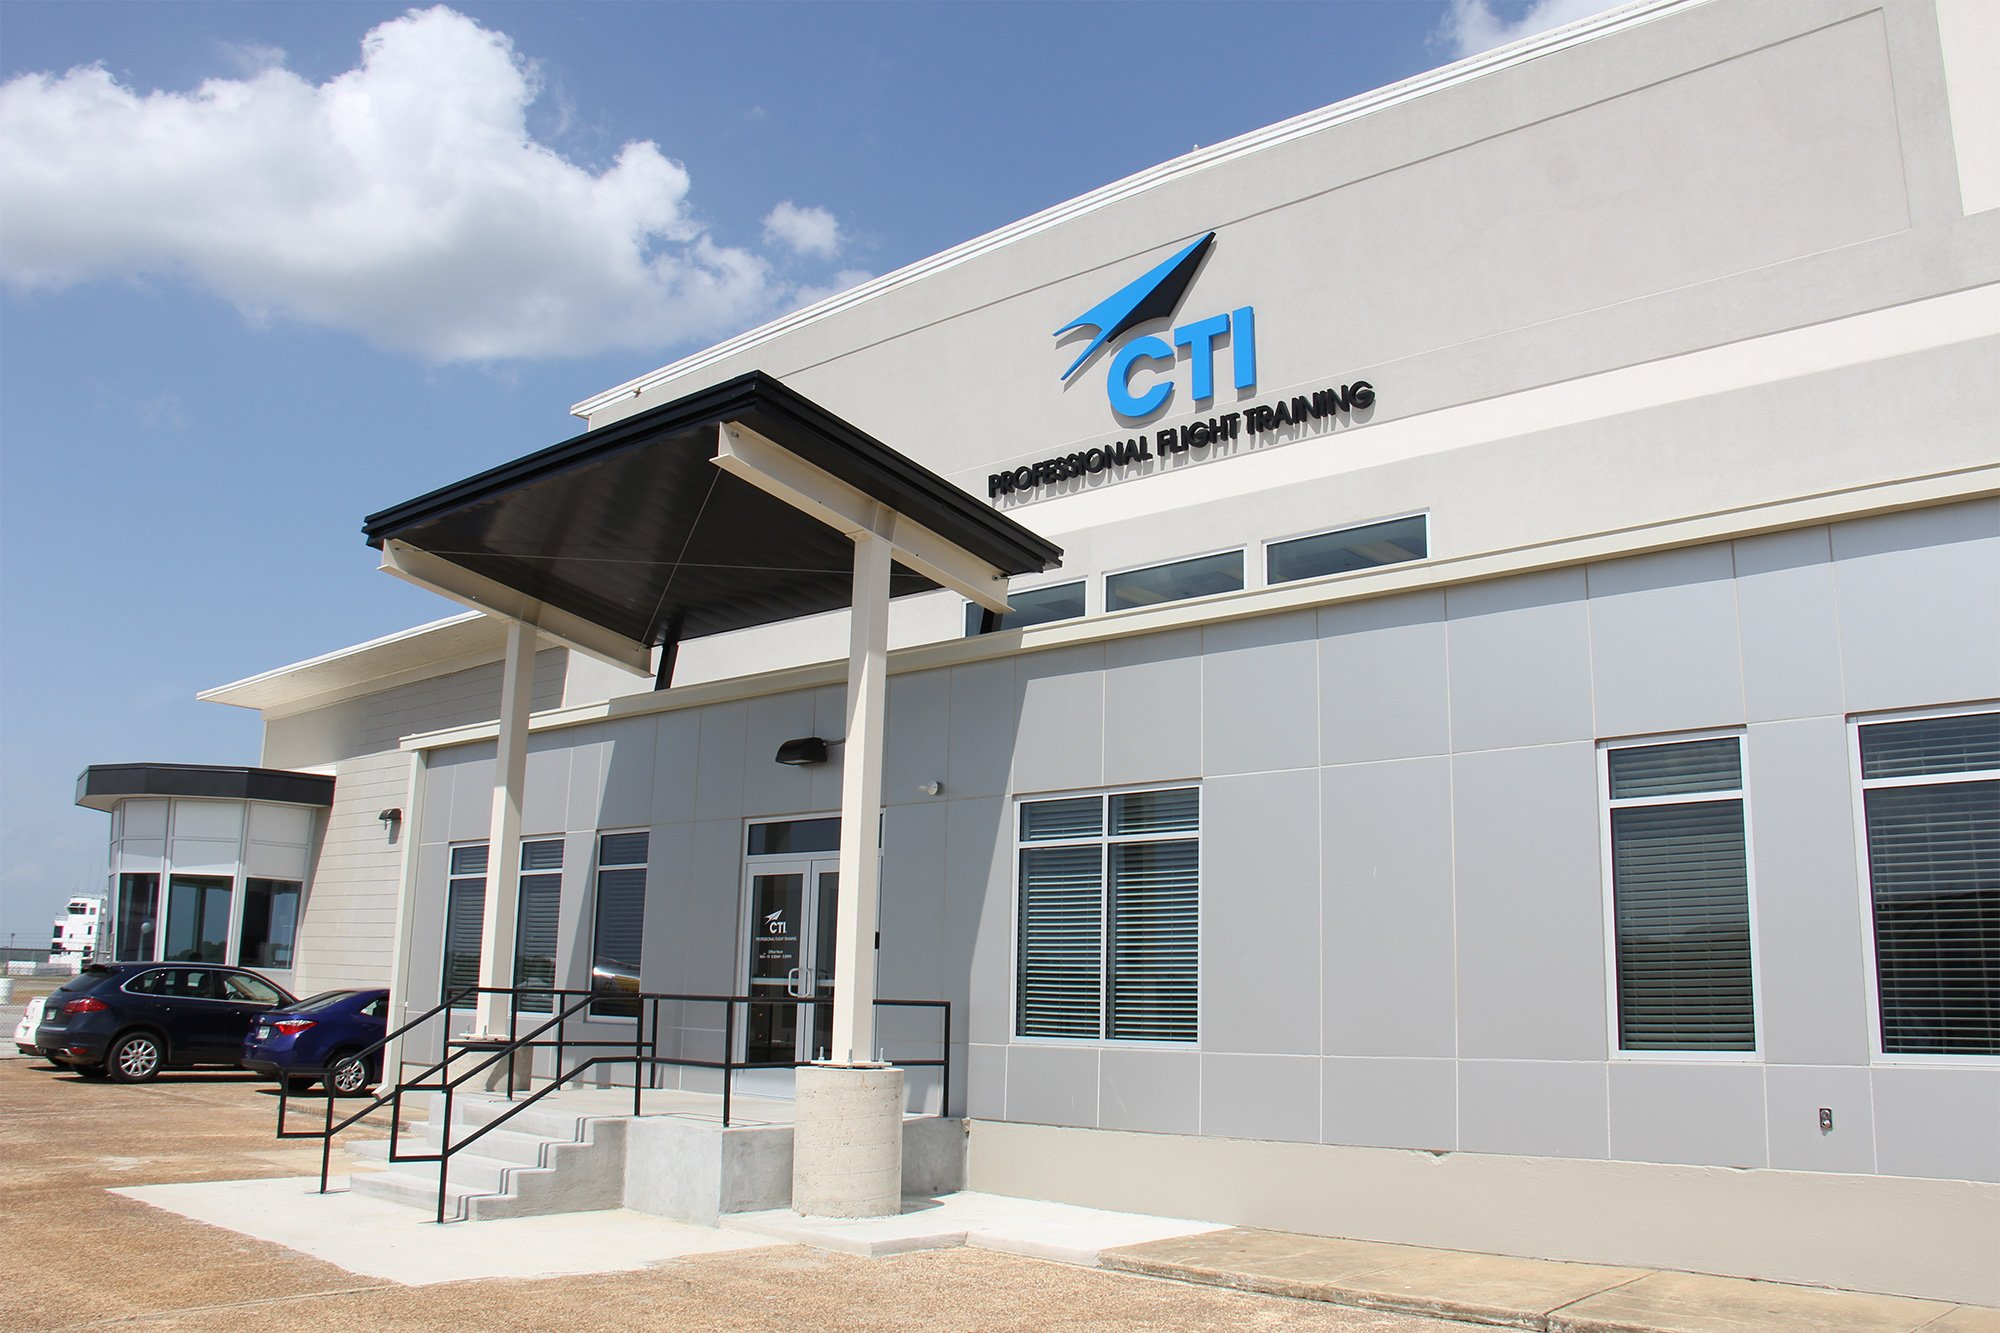 Exterior photo of CTI building at Millington Airport